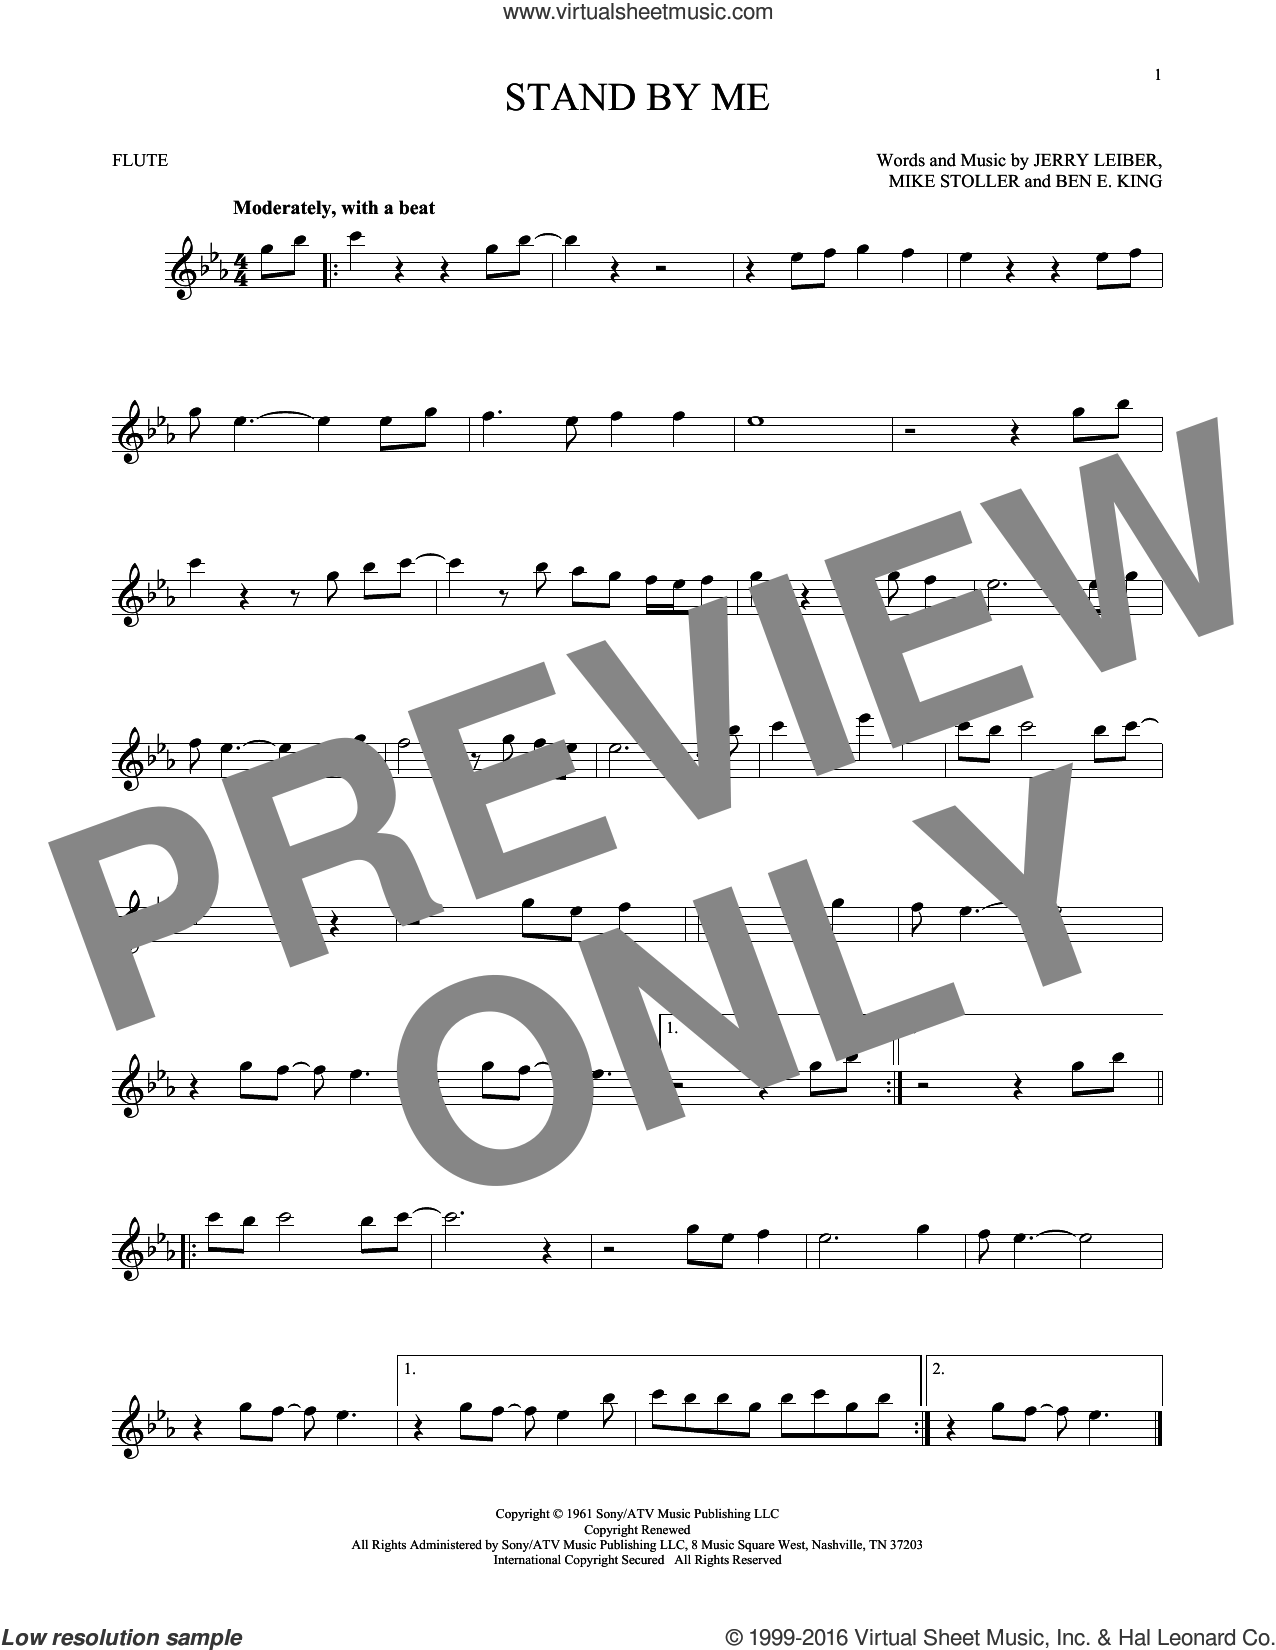 Stand By Me sheet music for flute solo by Mike Stoller, Ben E. King and Jerry Leiber. Score Image Preview.